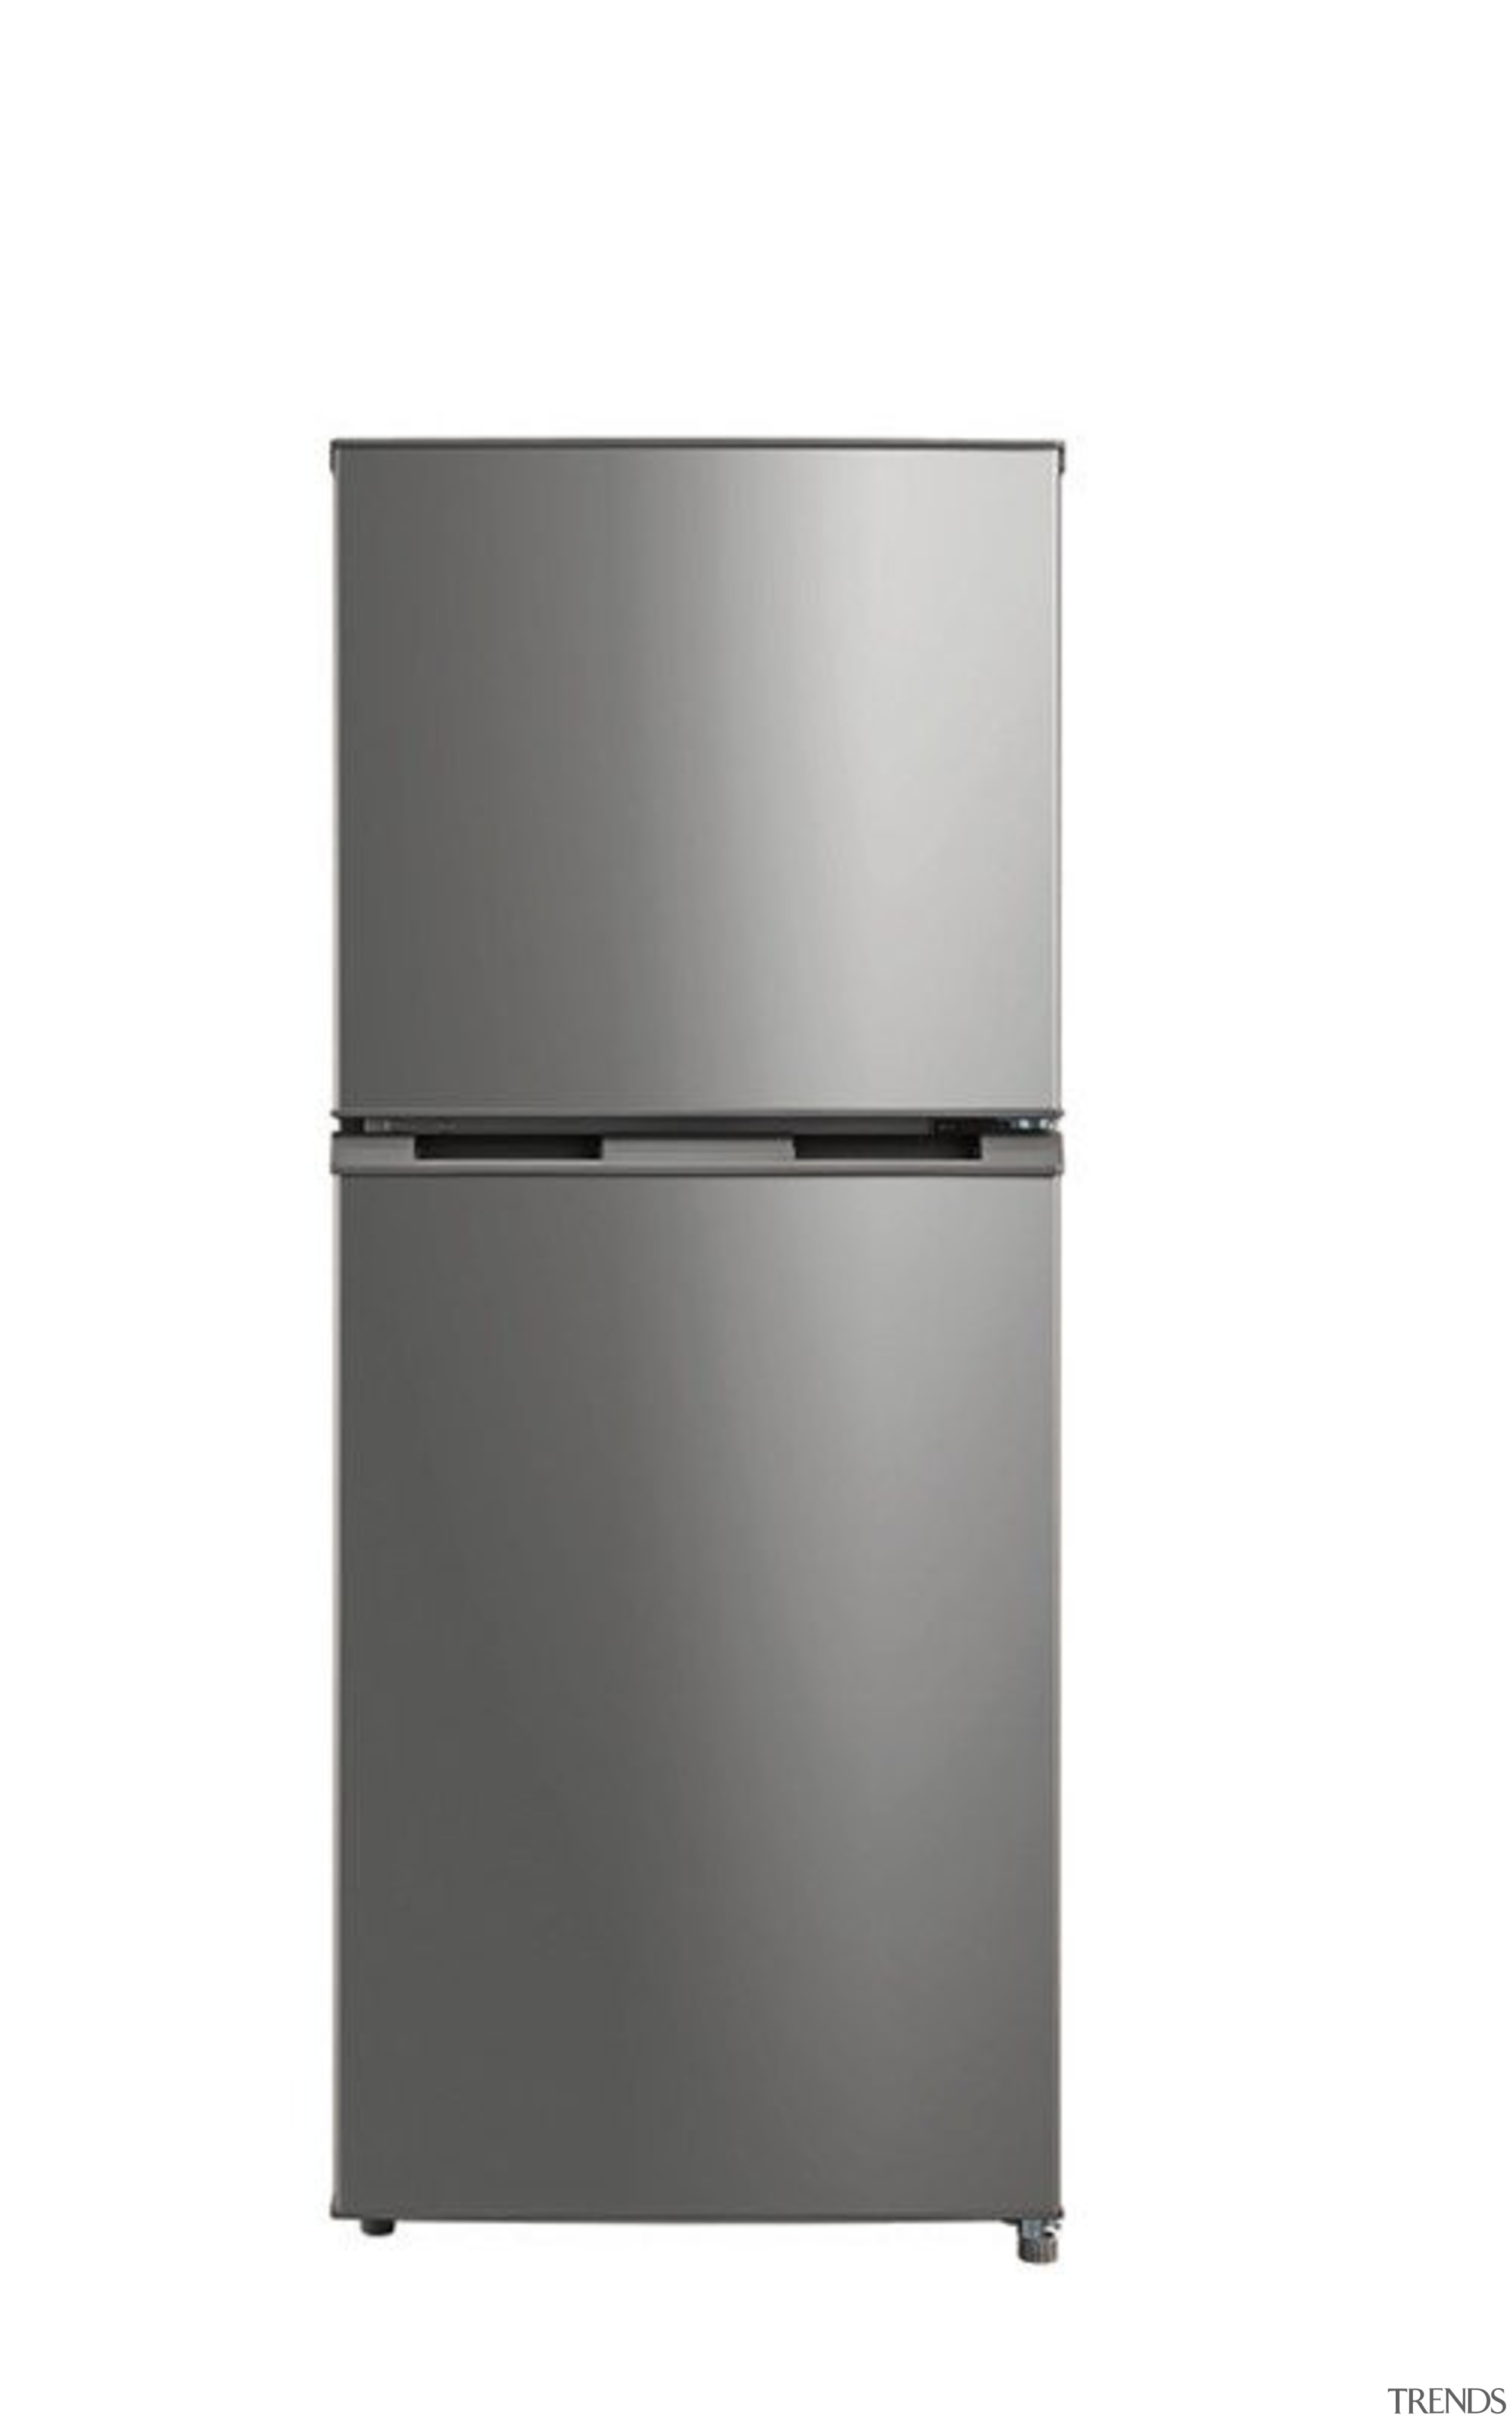 207L Top Mount Fridge FreezerCapacity (Gross): 207LFrost Free, home appliance, kitchen appliance, major appliance, product, product design, refrigerator, white, gray